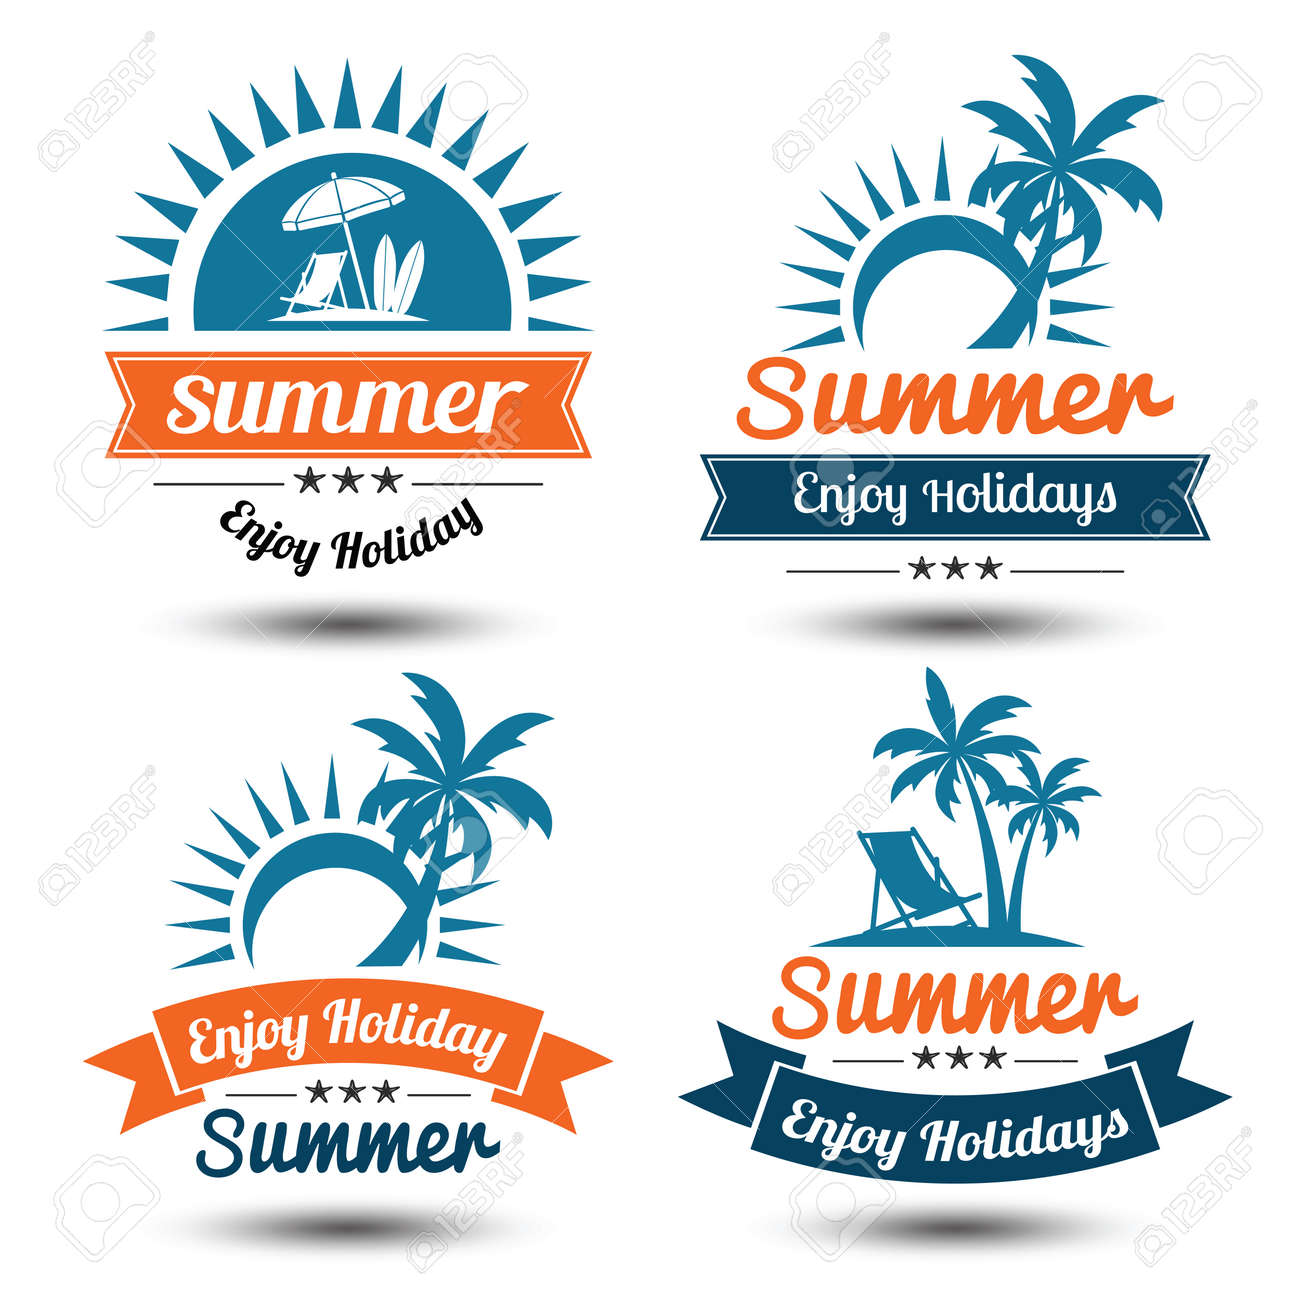 summer holidays design elements set retro and vintage templates labels badgesemblem